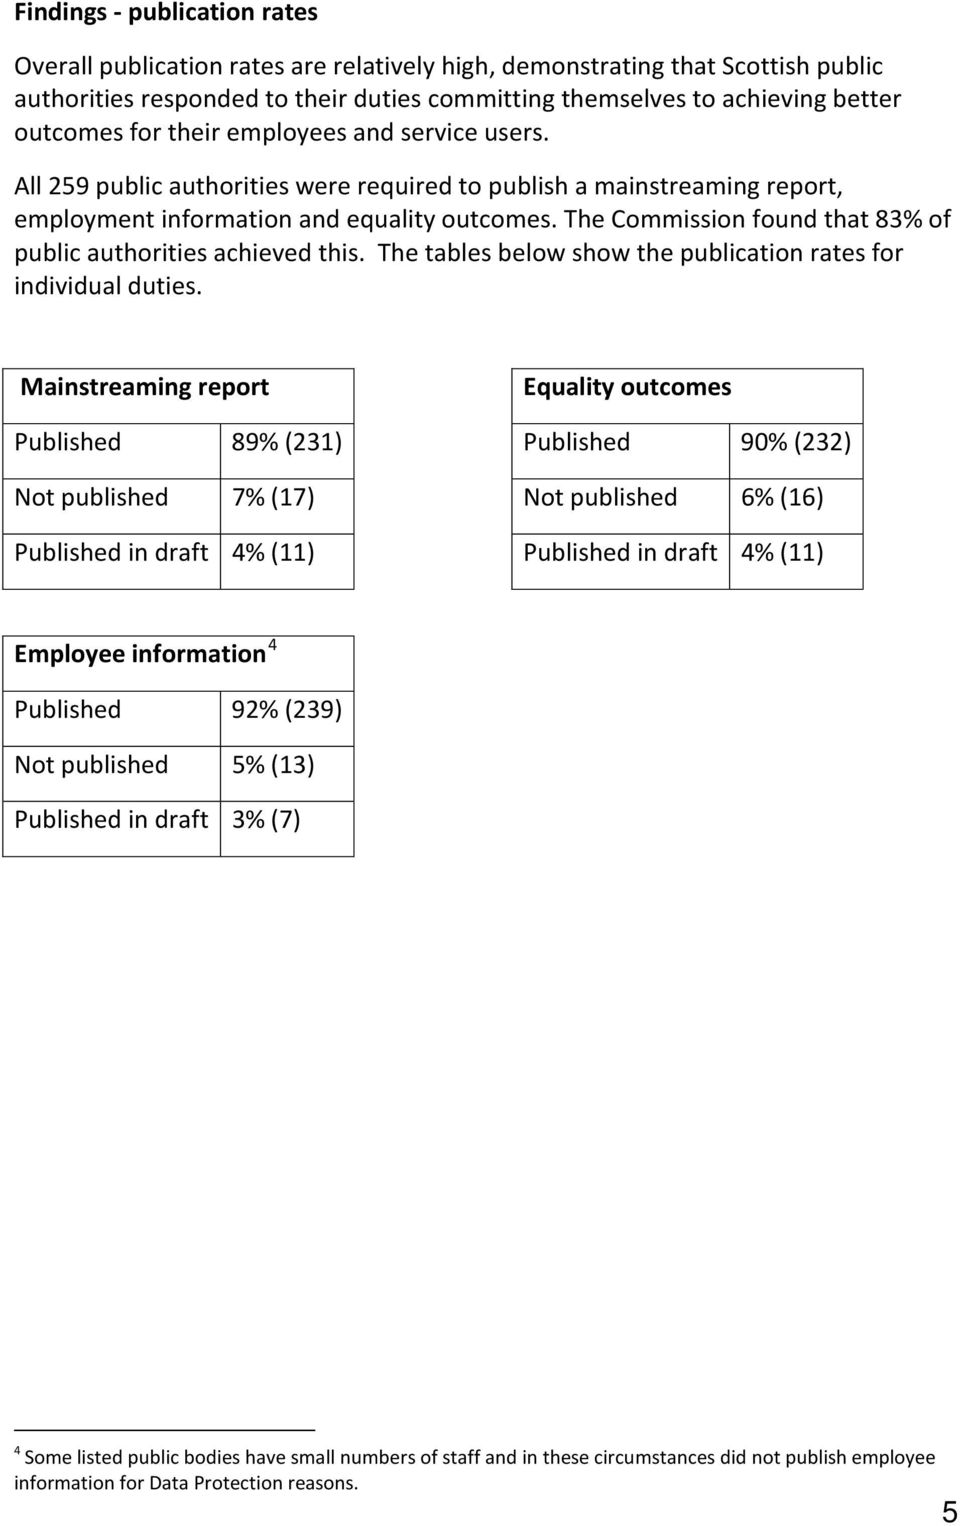 The Commission found that 83% of public authorities achieved this. The tables below show the publication rates for individual duties.